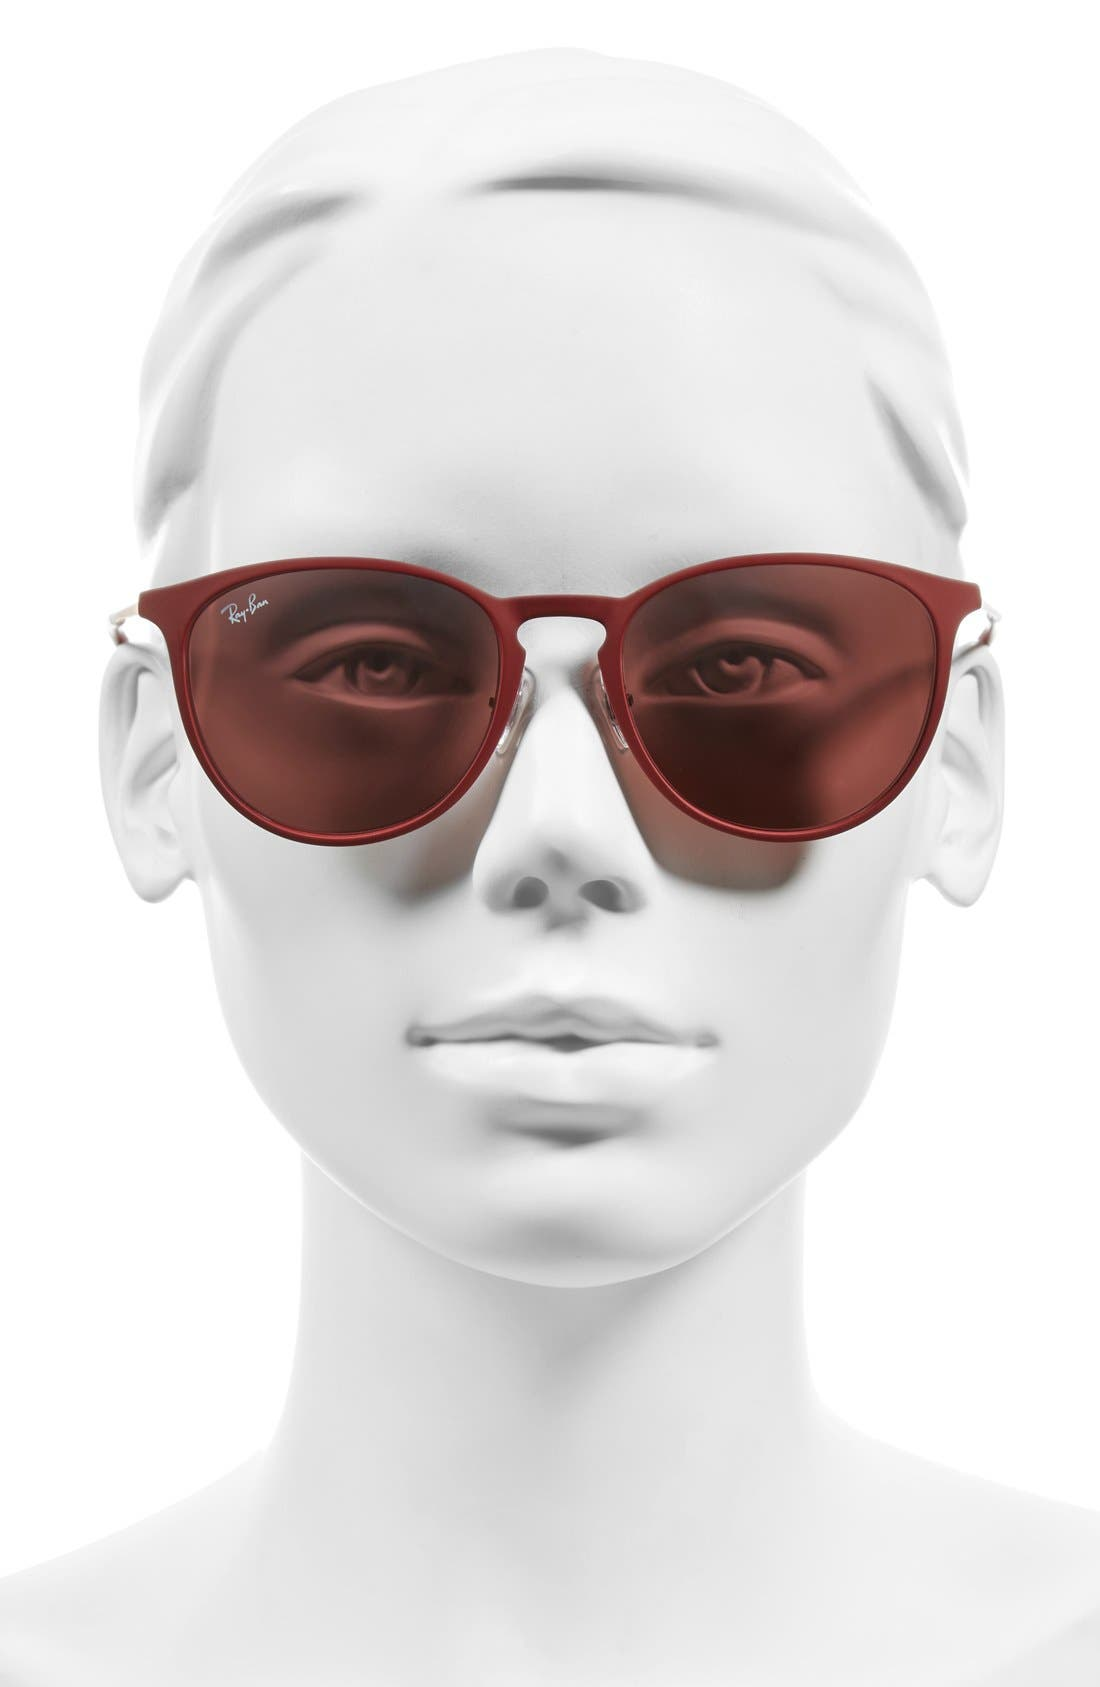 Highstreet 54mm Sunglasses,                             Alternate thumbnail 2, color,                             Bordeaux